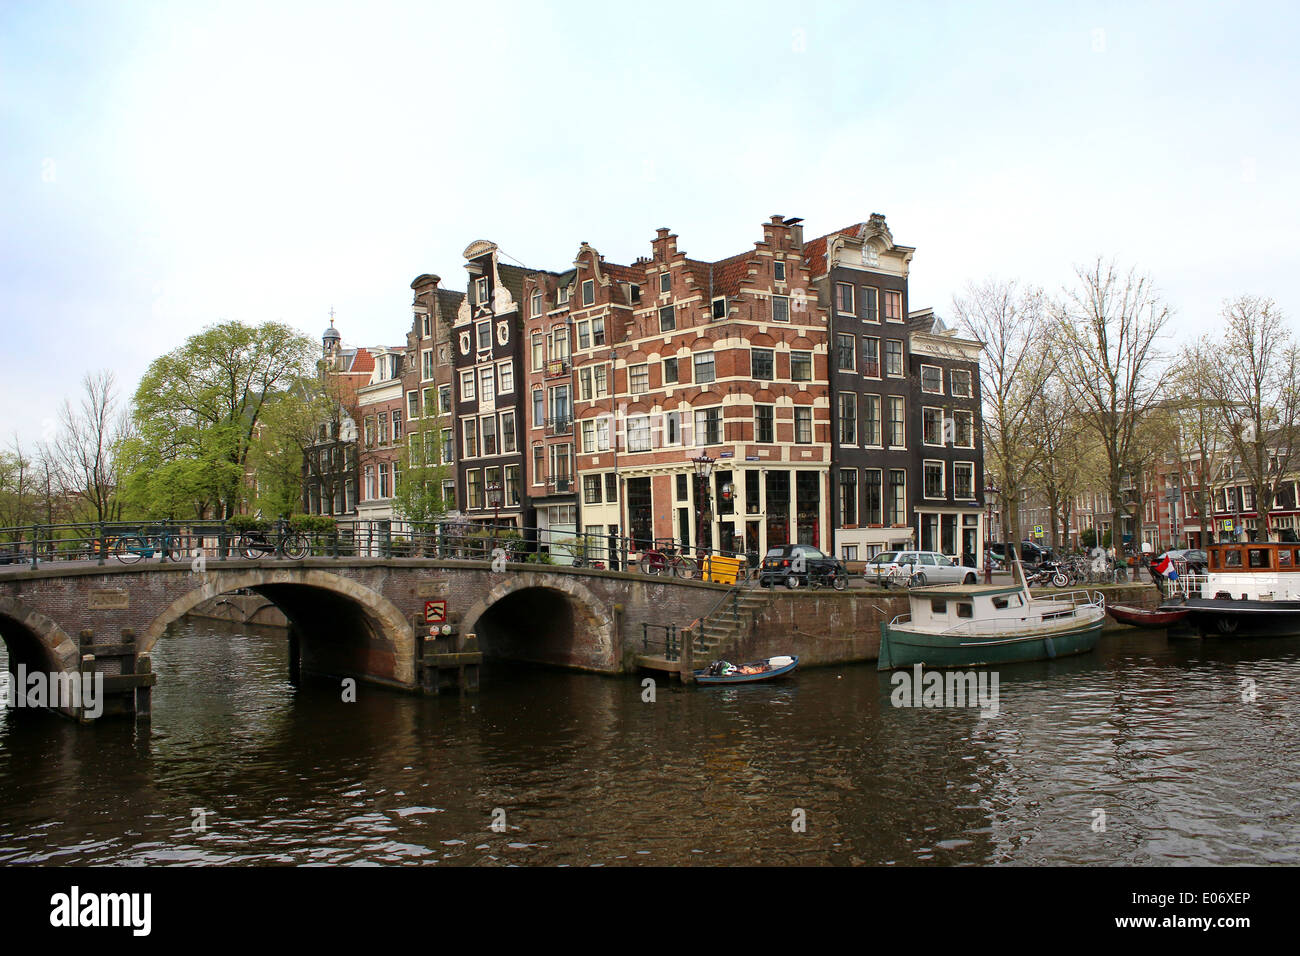 Bridge and old houses where Prinsengracht meets Brouwersgracht canal in Amsterdam, The Netherlands - Stock Image